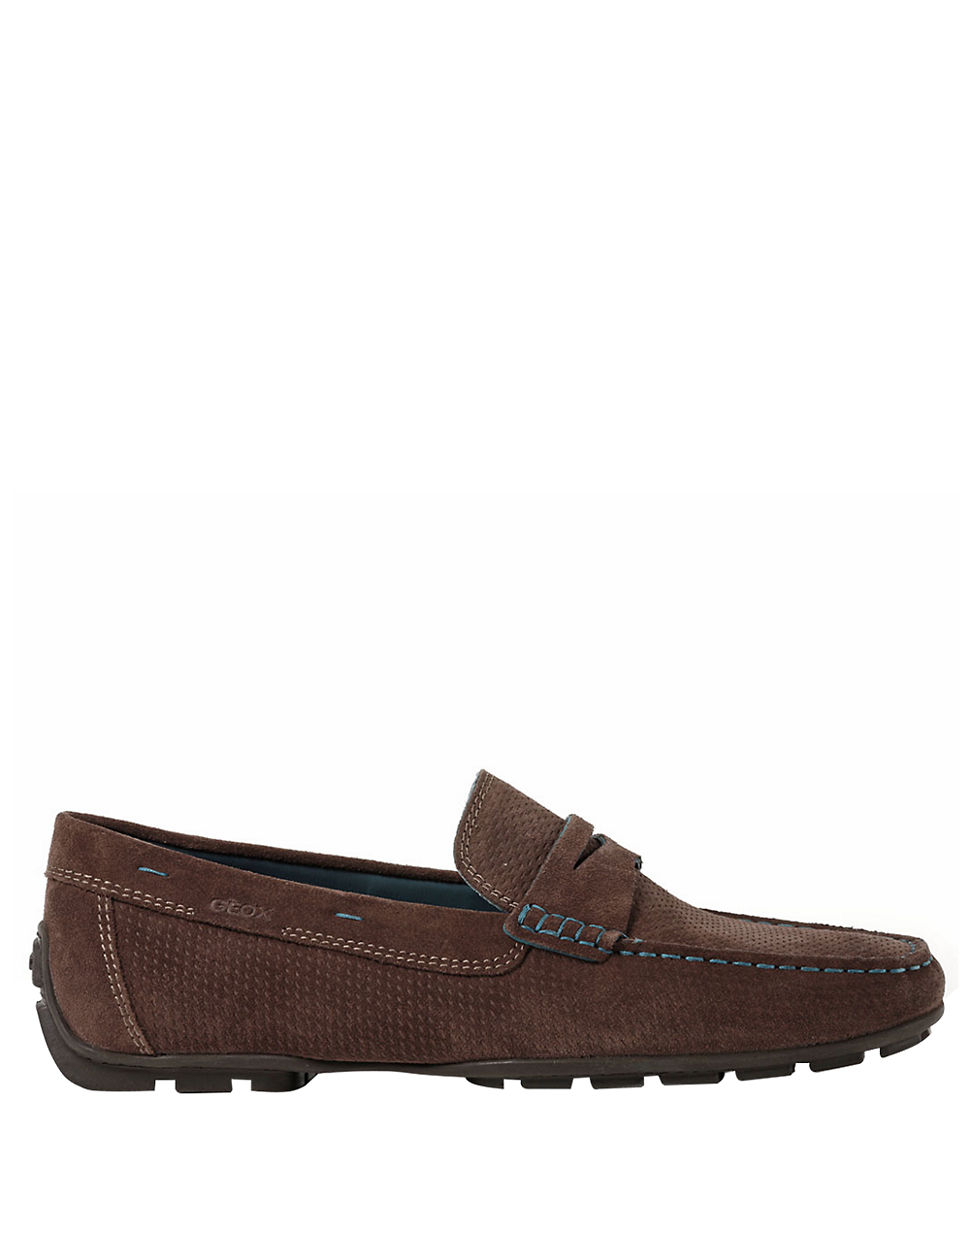 geox monet26 suede moccasins in brown for brown